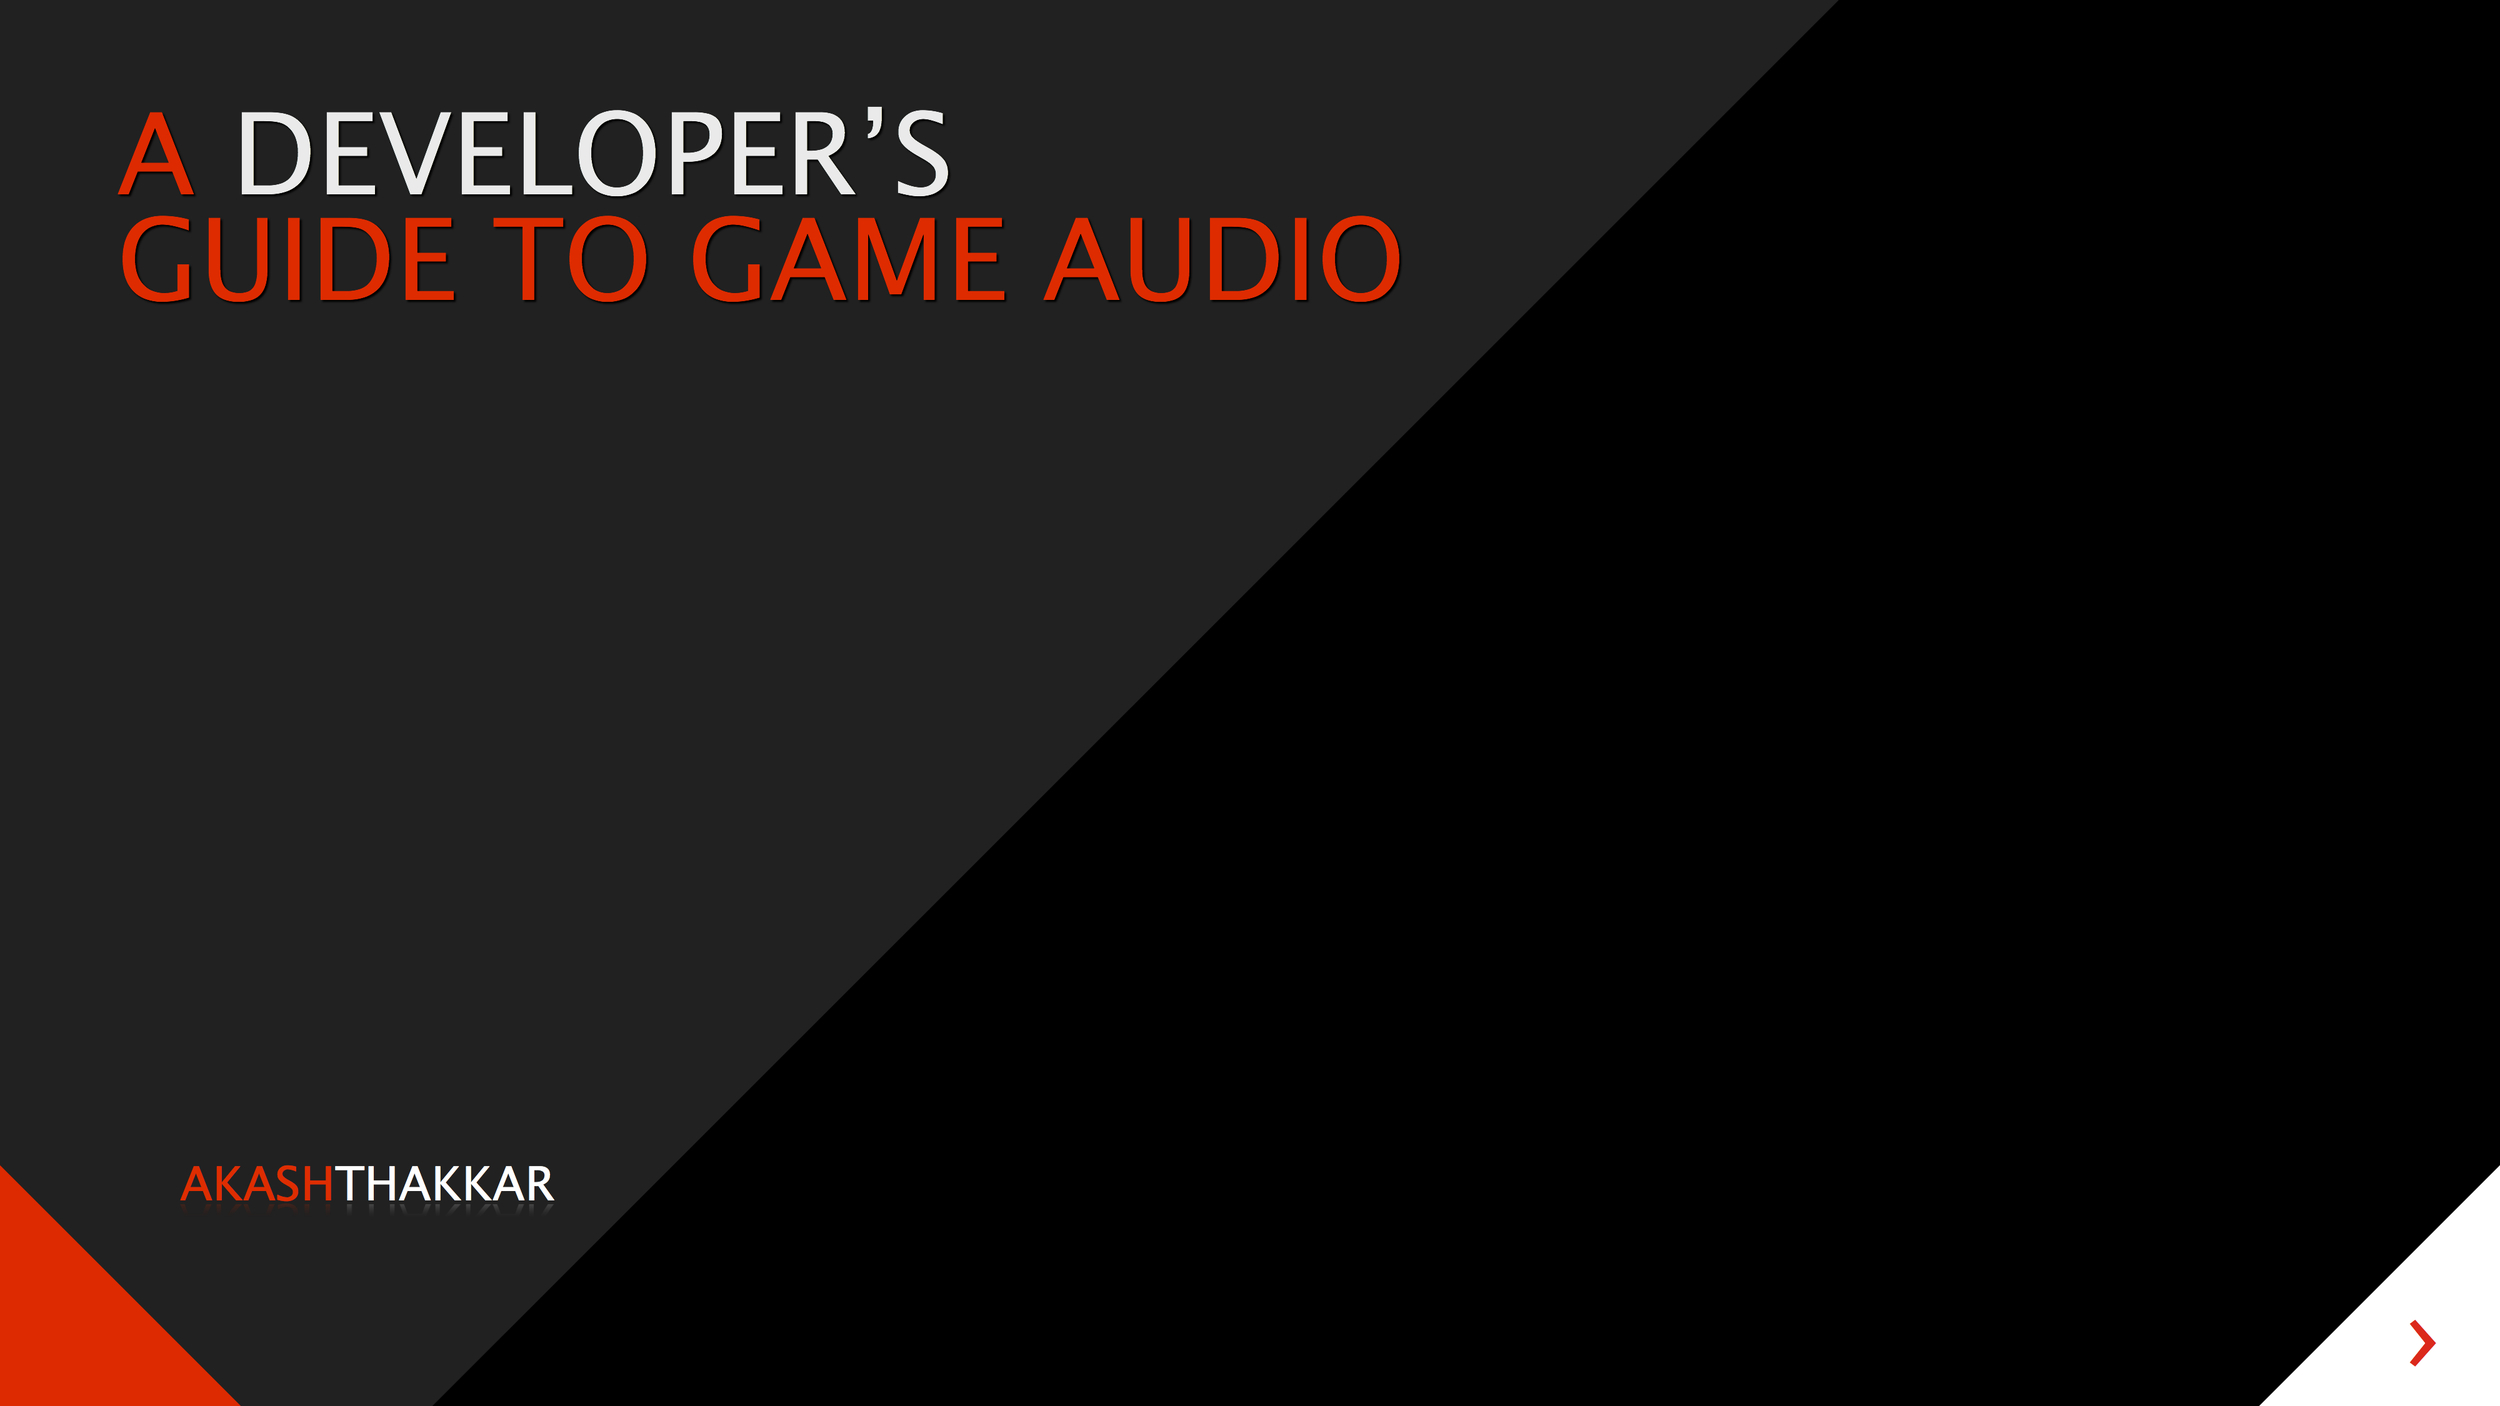 A Developer's Guide to Game Audio.jpg